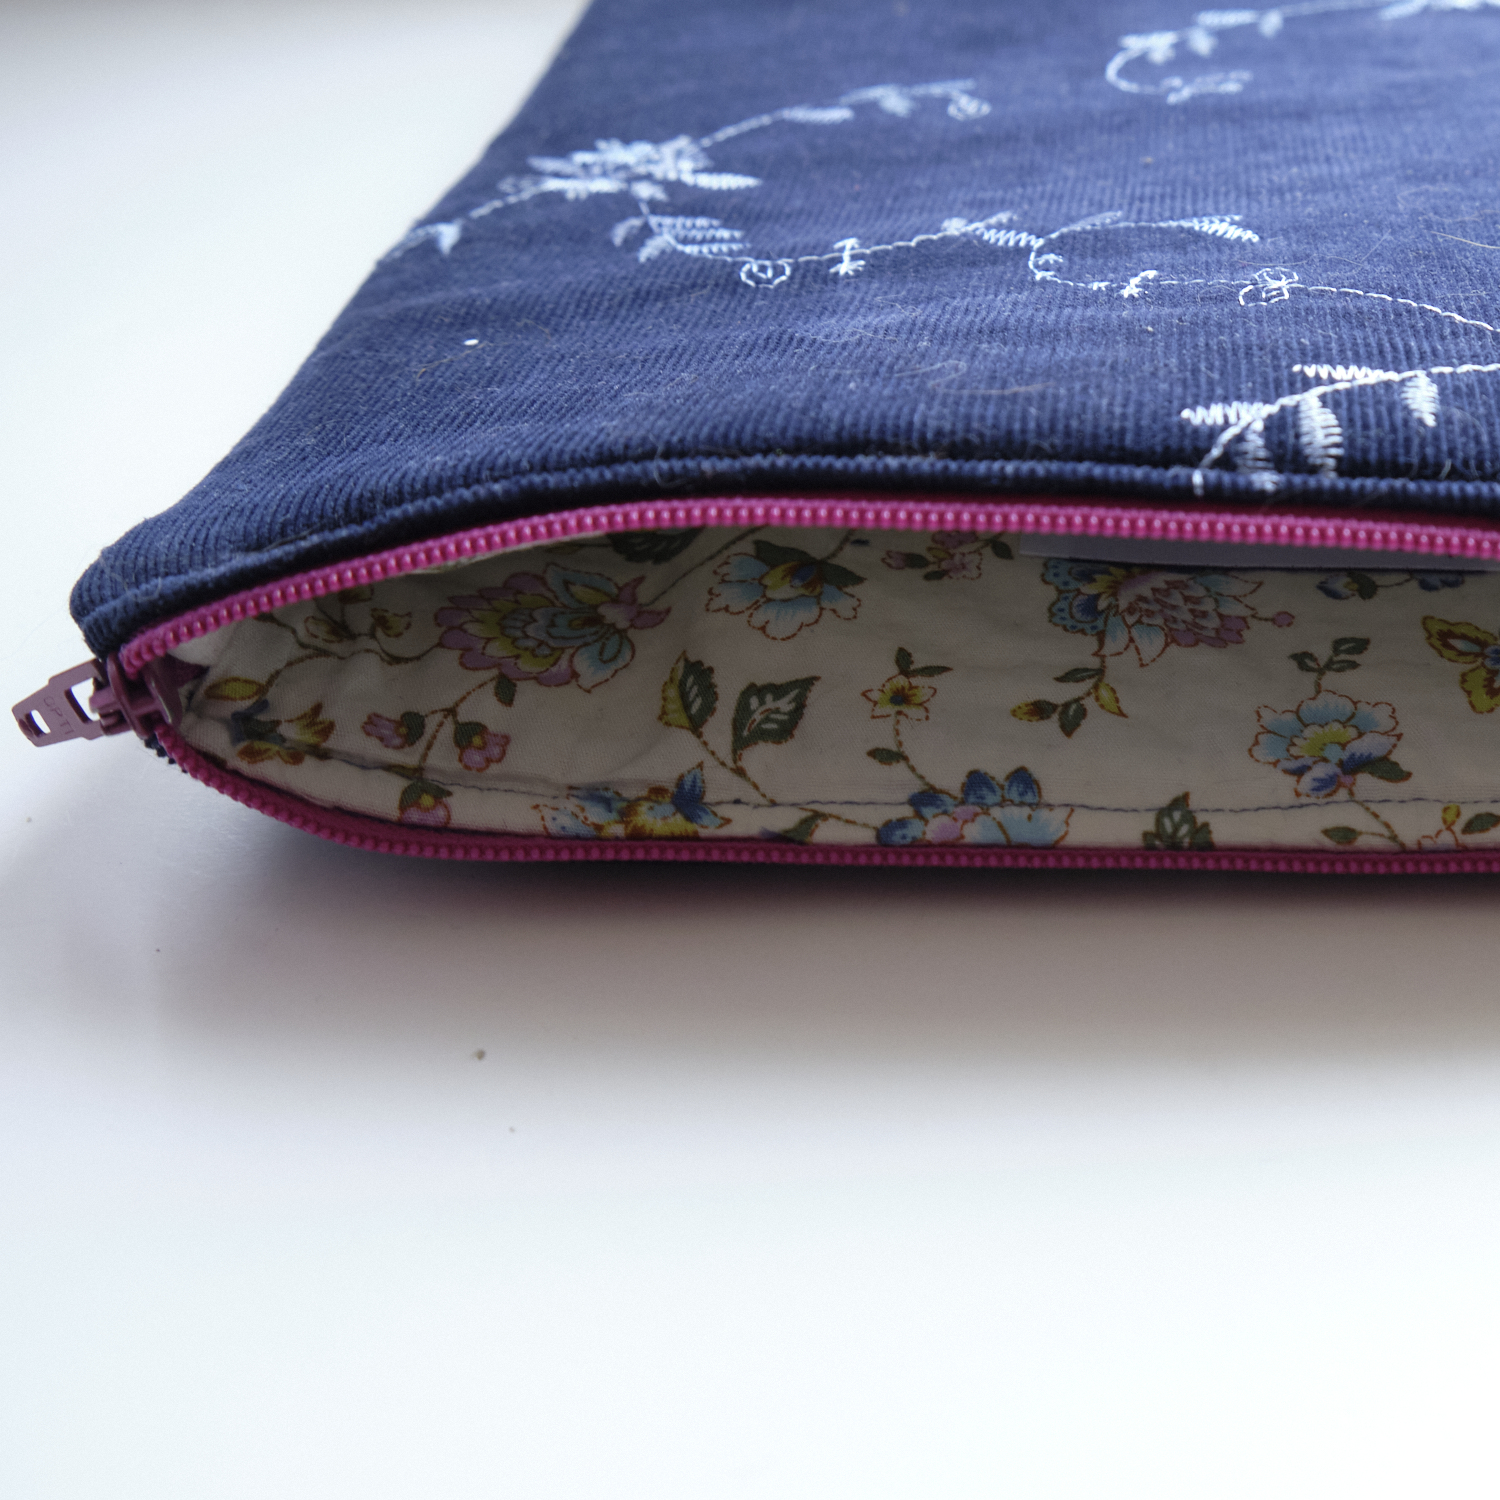 An open, dark blue iPad sleeve with a flowery lining and a pink zipper